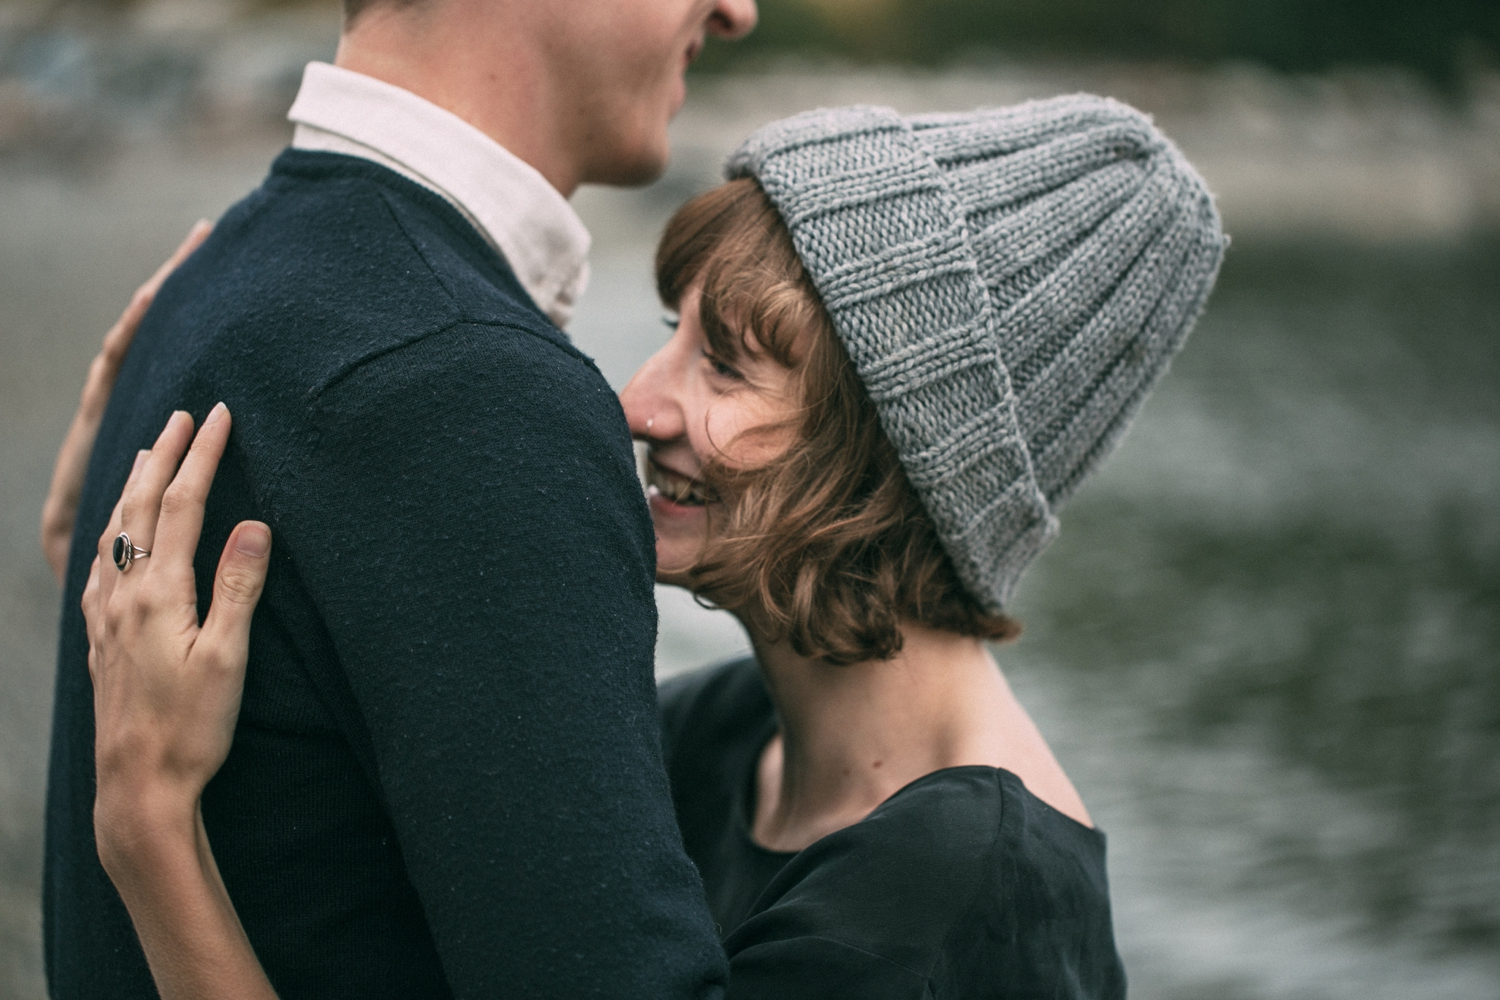 Vancouver Based Wedding Photographer captures natural and fun moments between engaged couple during their engagement photo shoot in Gas Town